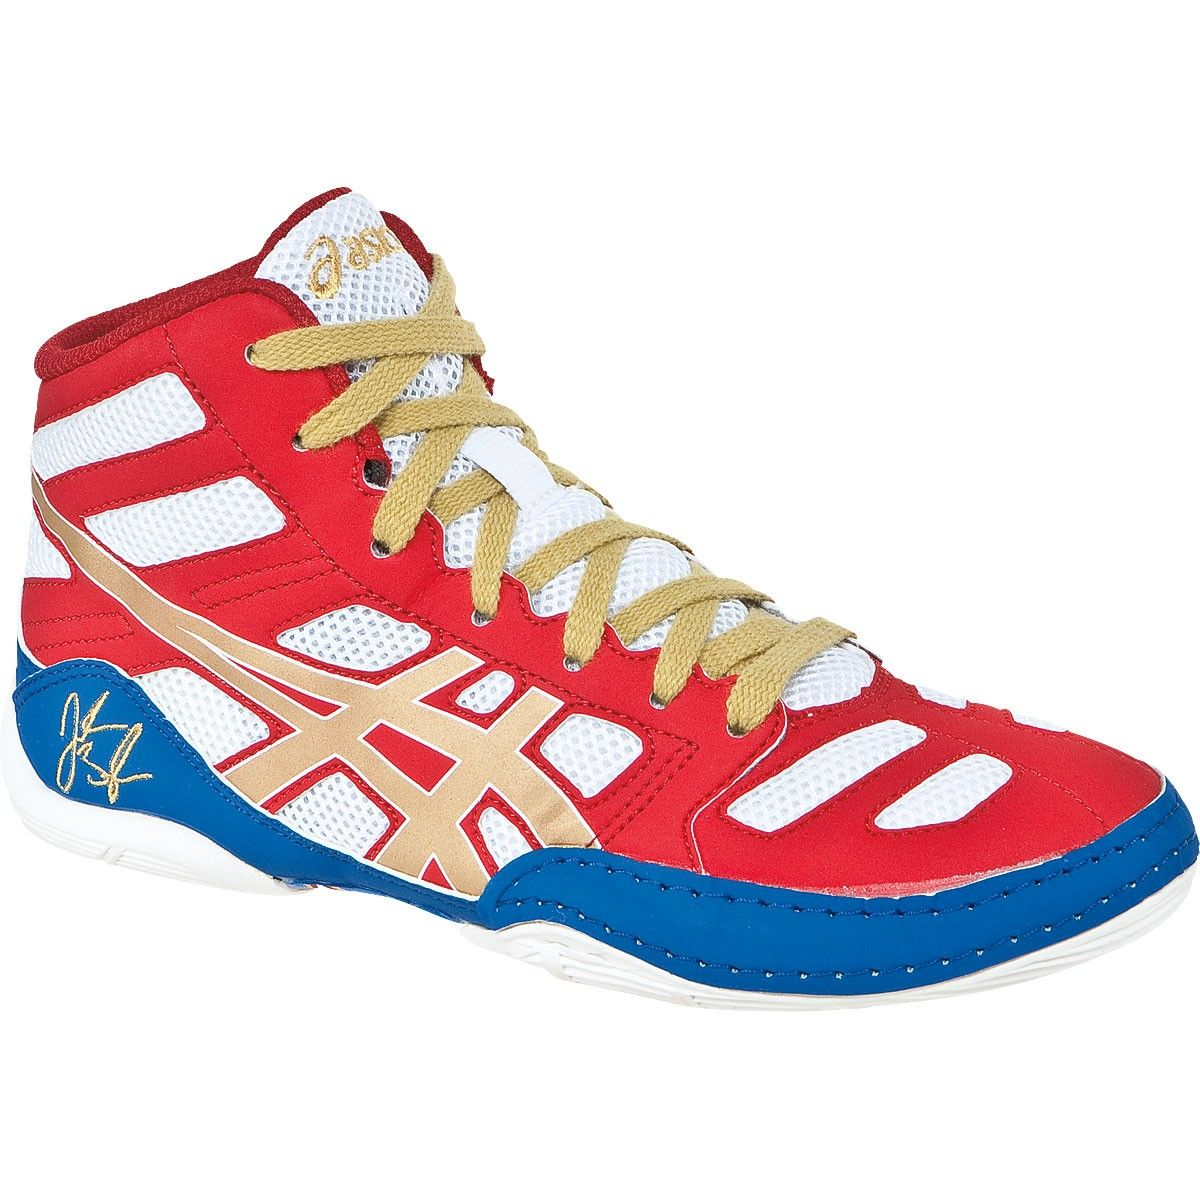 fa293d28a413 Asics JB Elite GS Jordan Burroughs Youth Wrestling Shoes